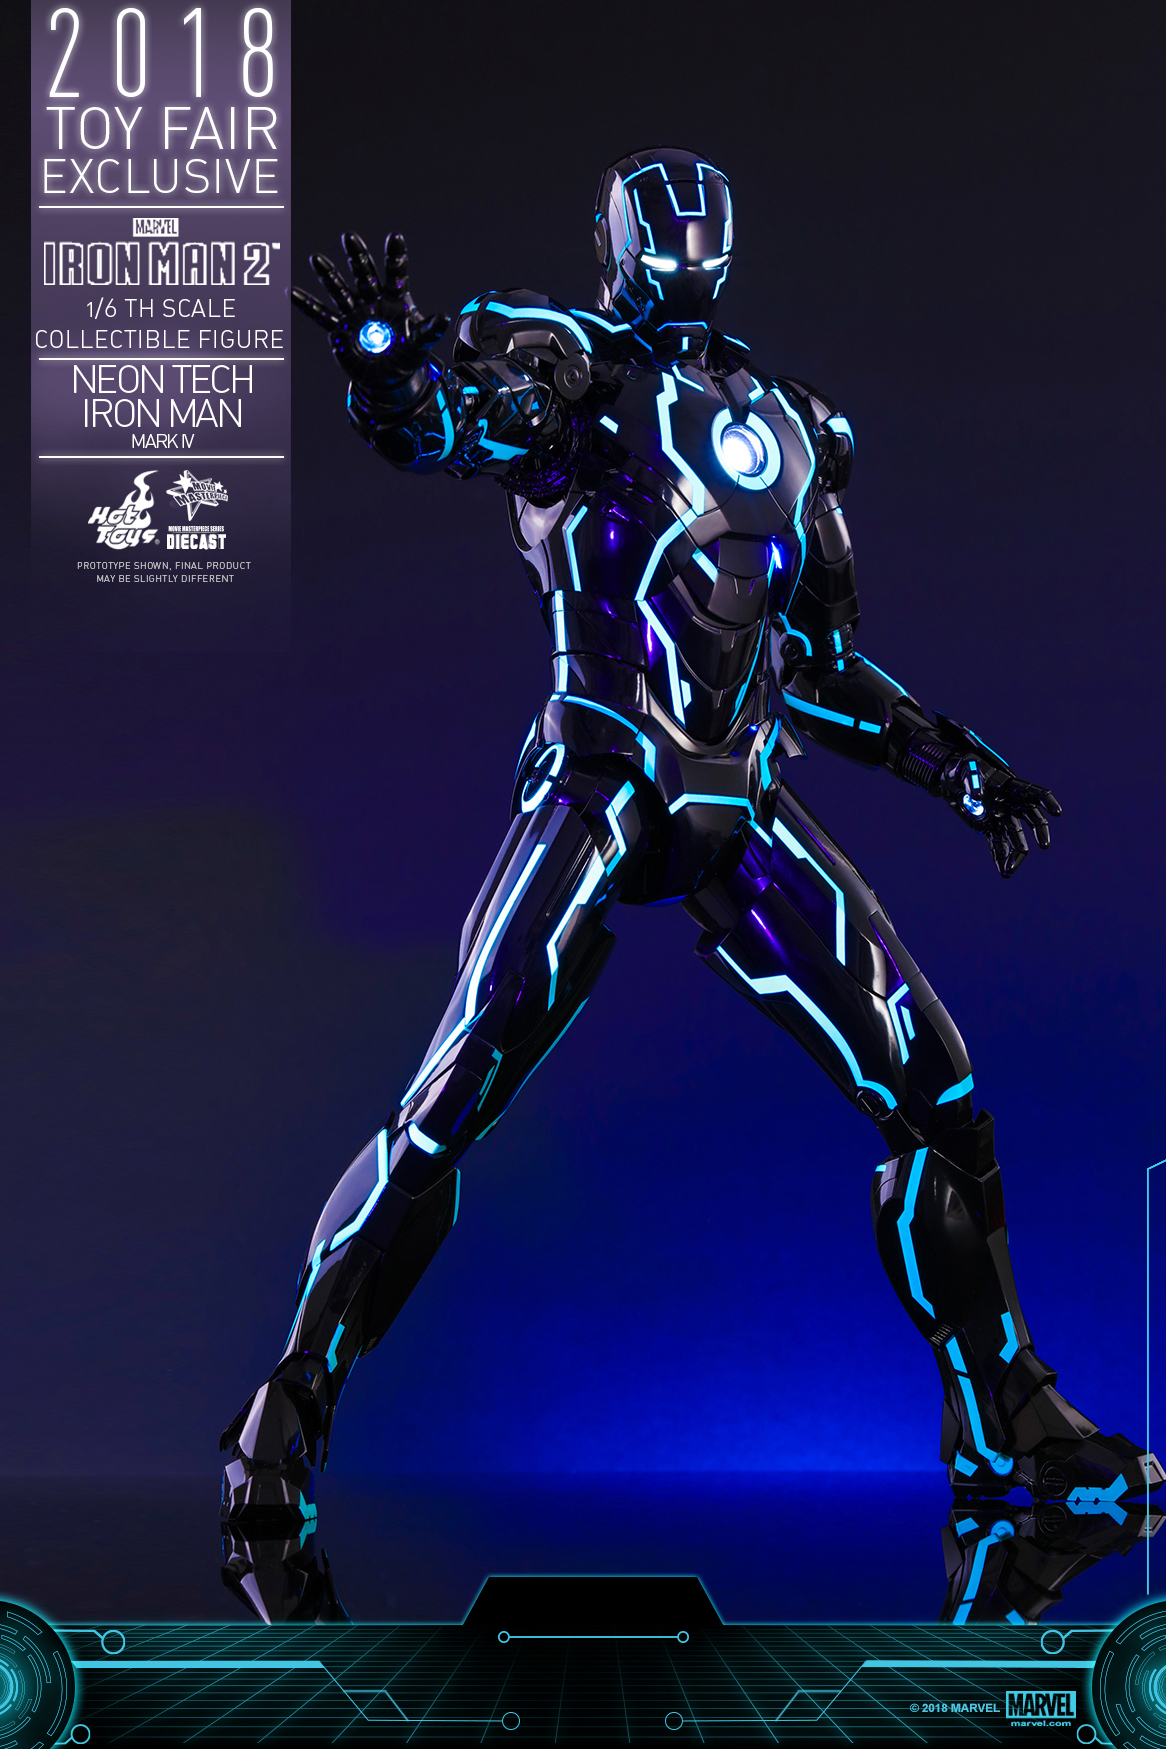 Hot Toys - Iron Man 2 - Neon Tech Iron Man Mark IV collectible figure_PR1